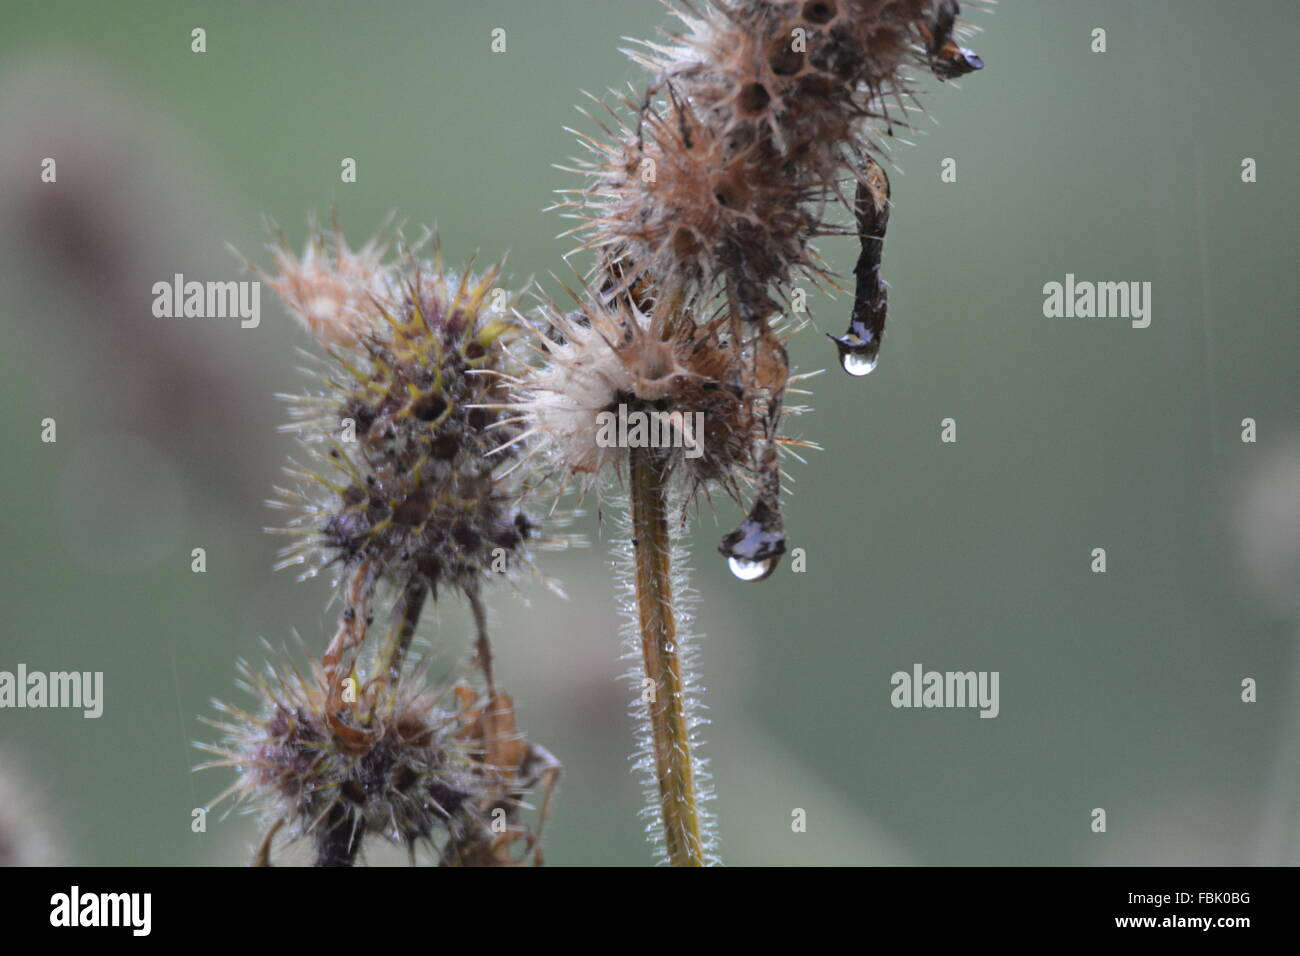 Water drip on frosty dead plant - Stock Image